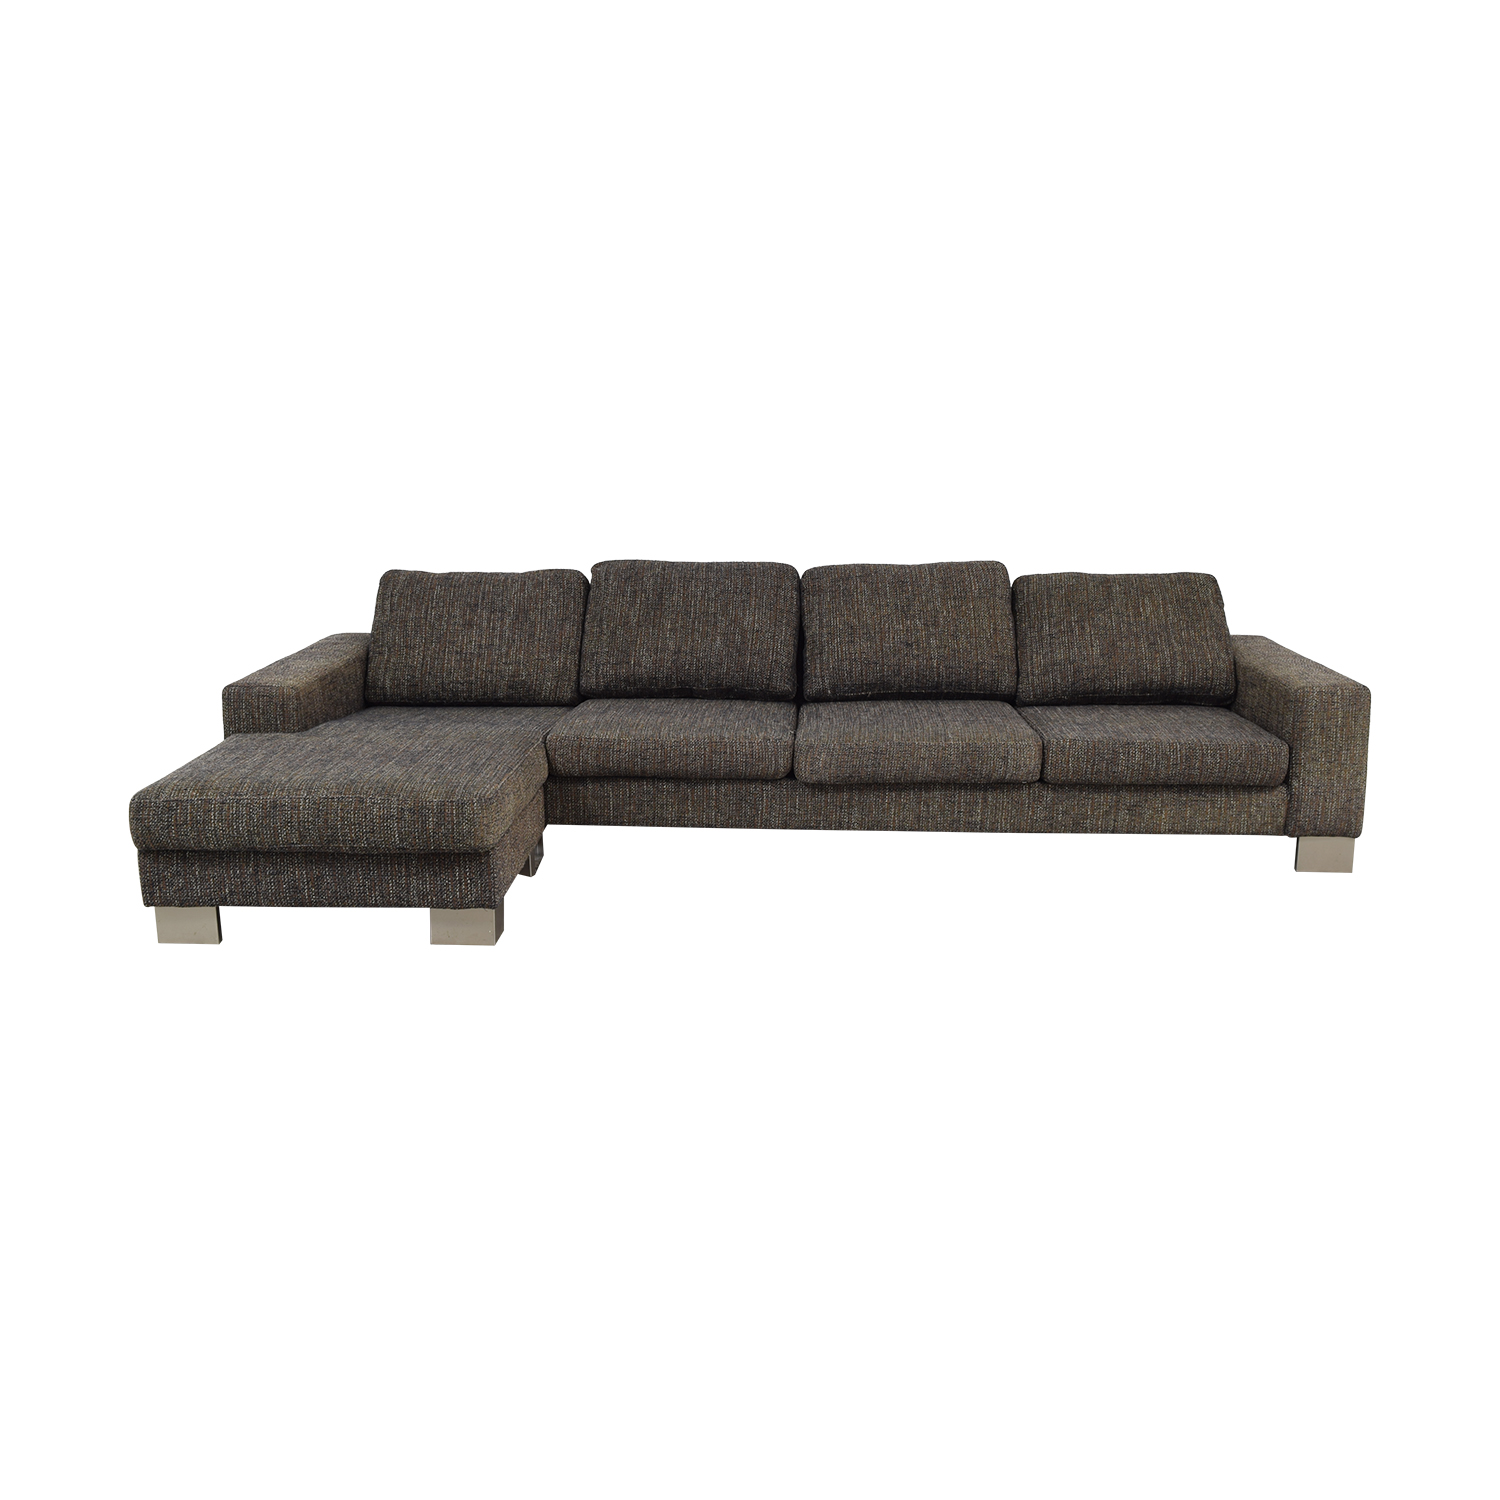 buy BoConcept BoConcept Brown Sectional Couch online